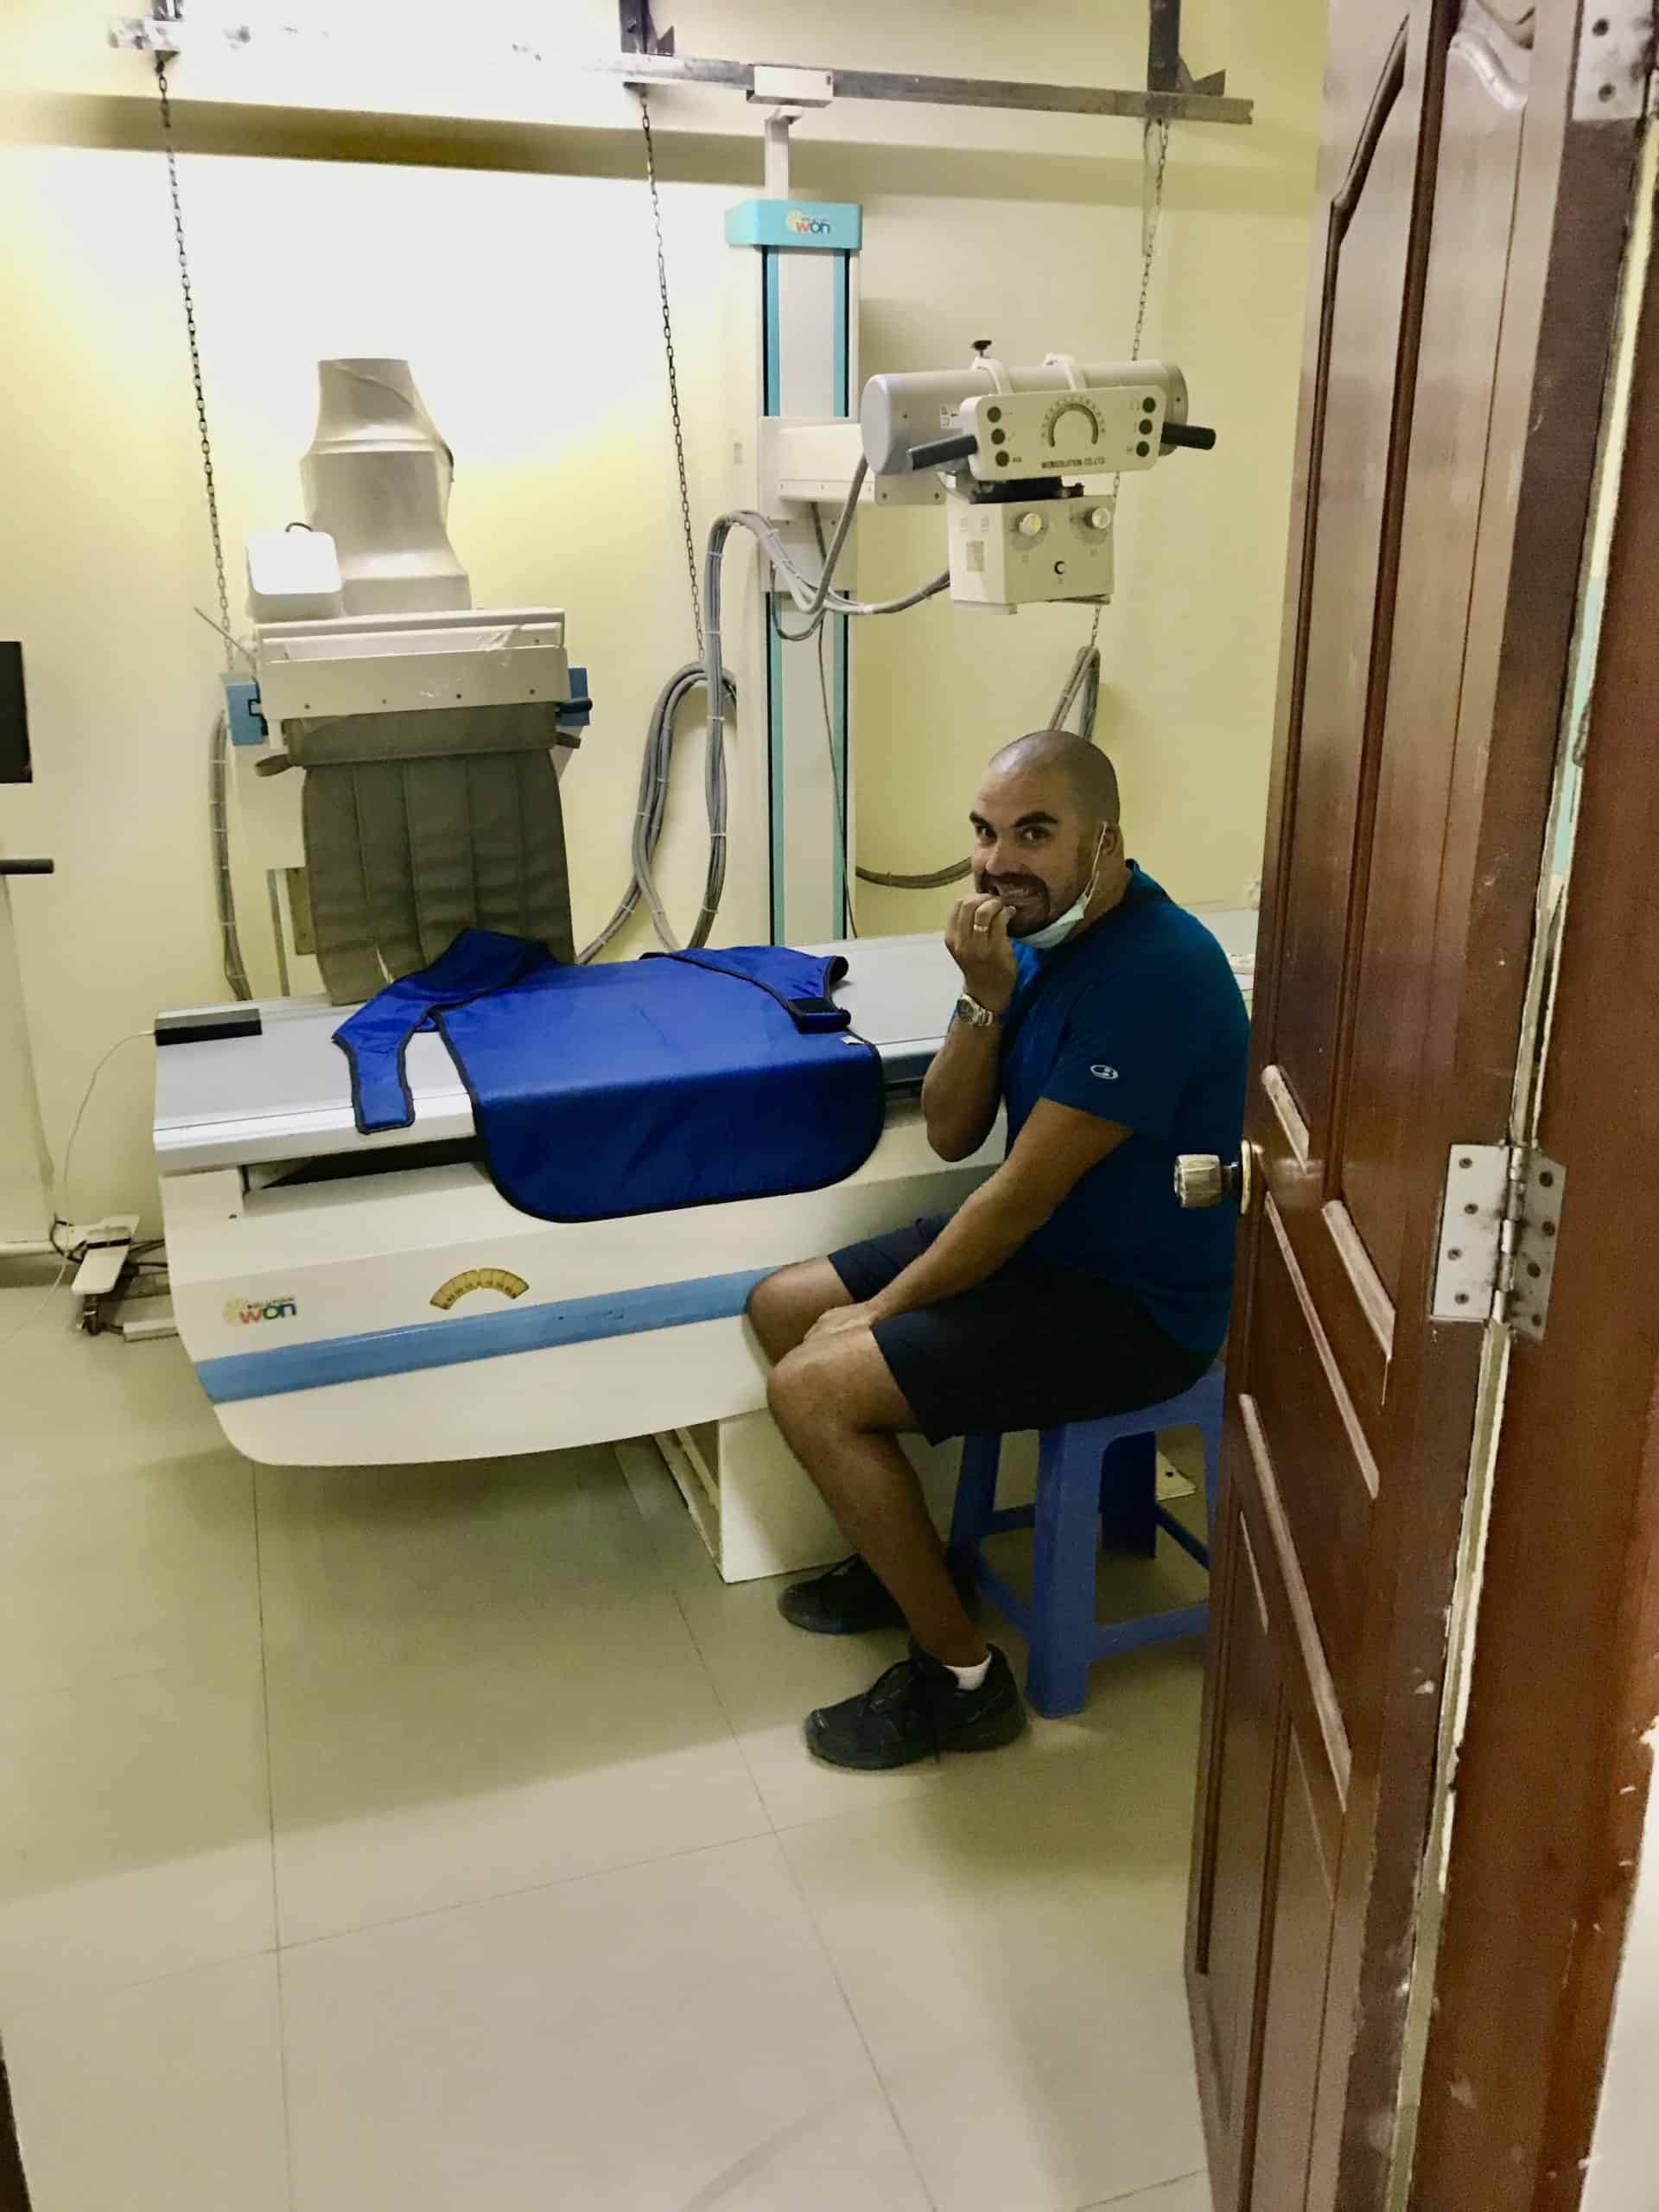 Omer waiting for an x-ray at a hospital in Cambodia